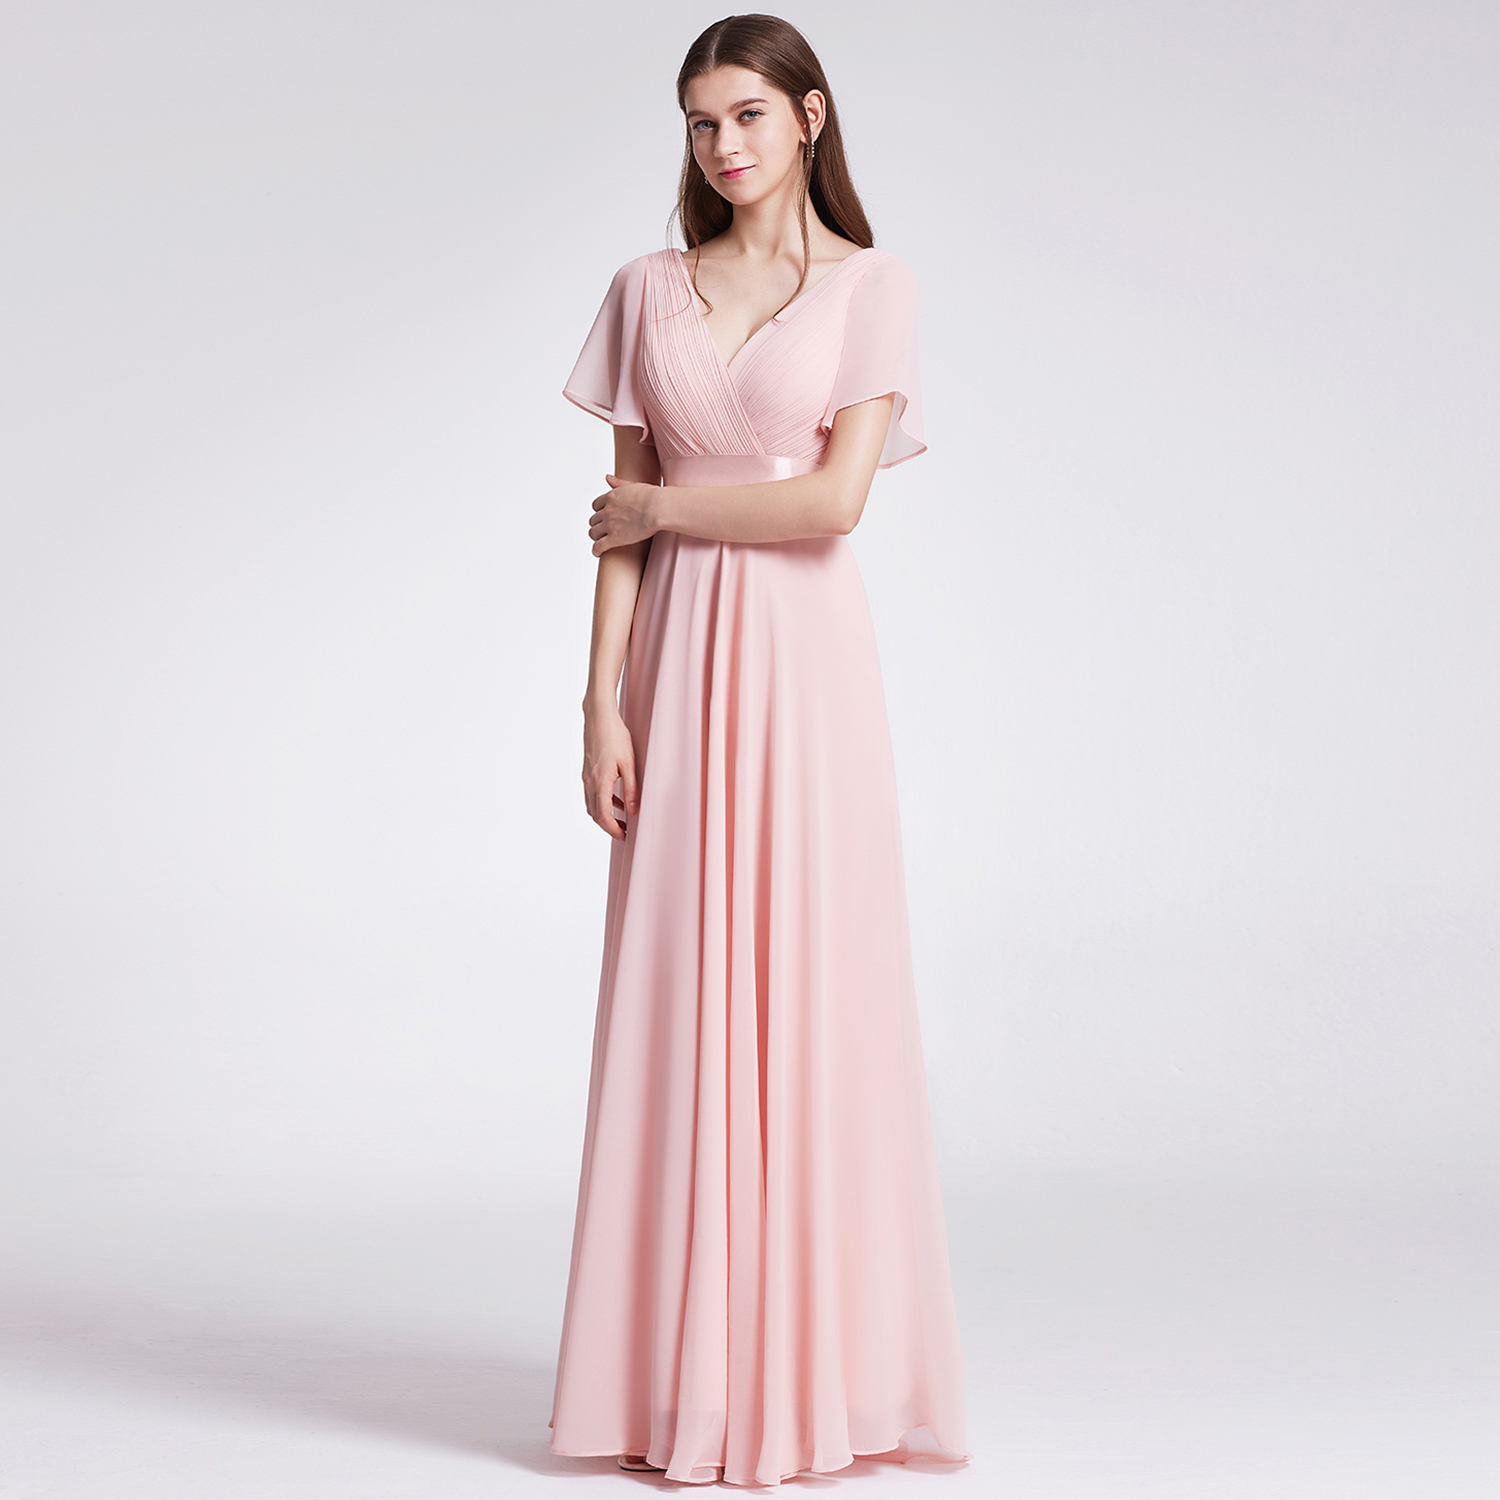 Ever-Pretty Womens Formal Evening Floor-Length Short Sleeve Mother of the Bride Maxi Dresses for Women 09890 Pink US 4